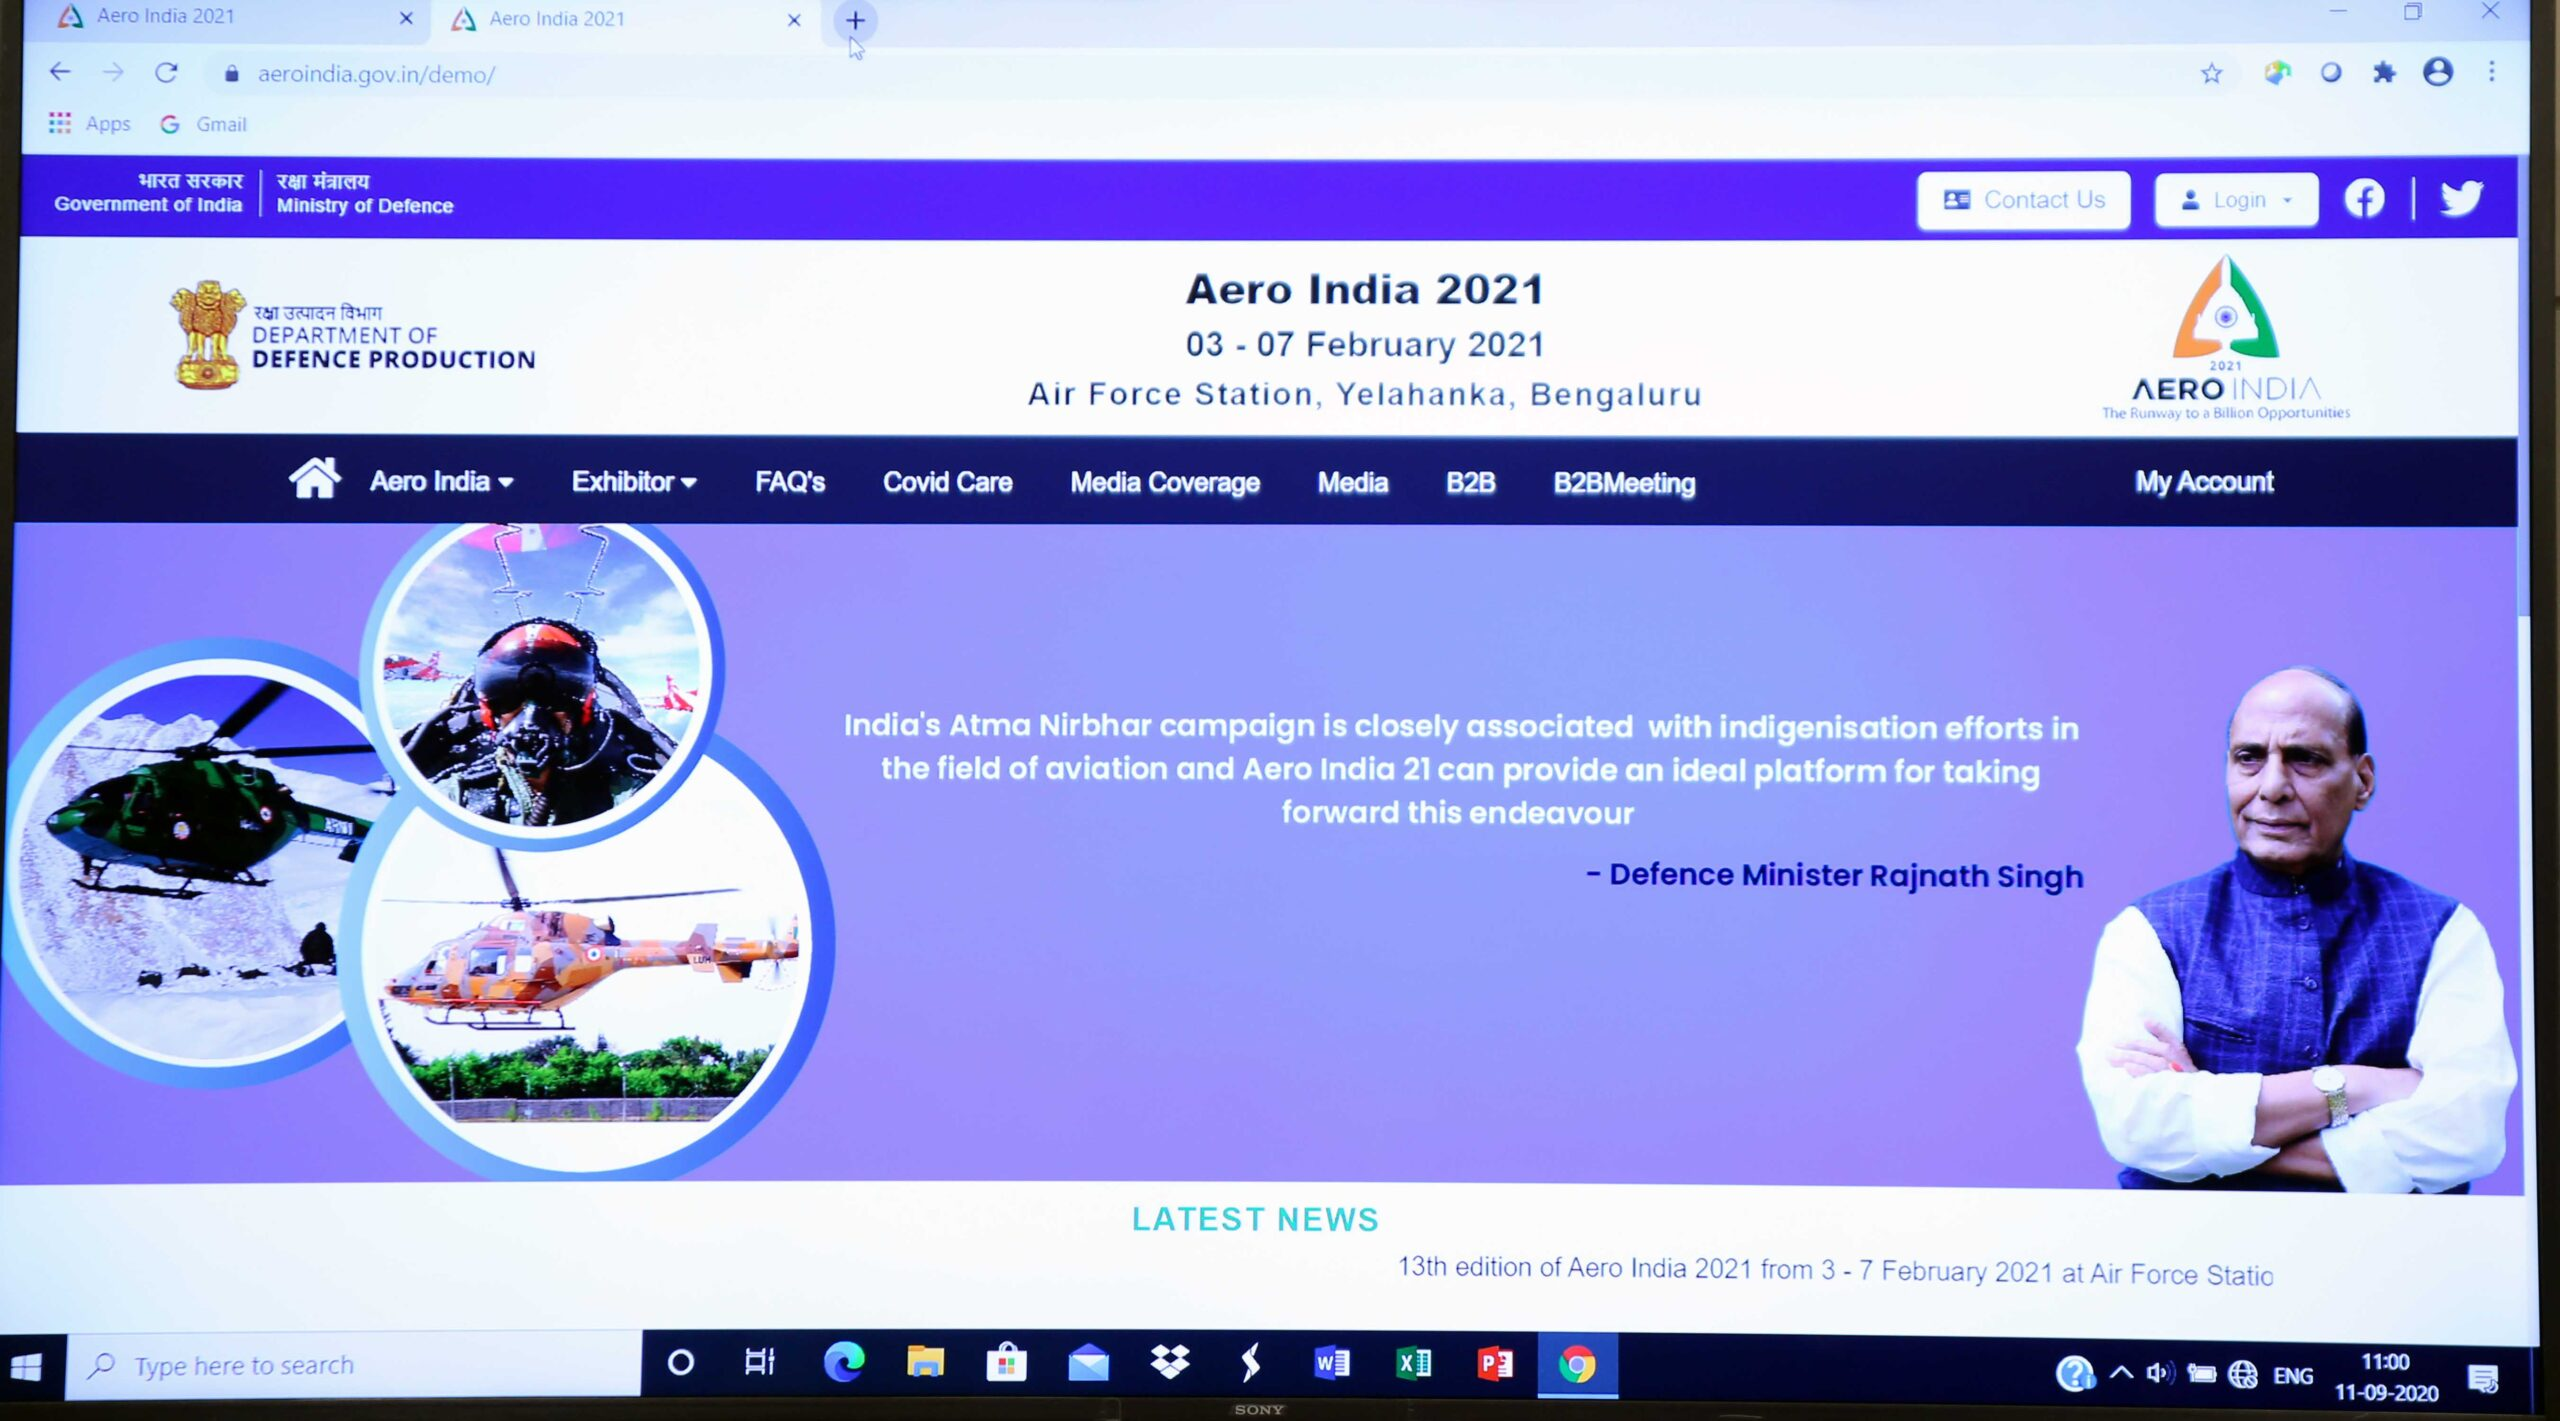 Defense Minister Launches Arrow India 21 website